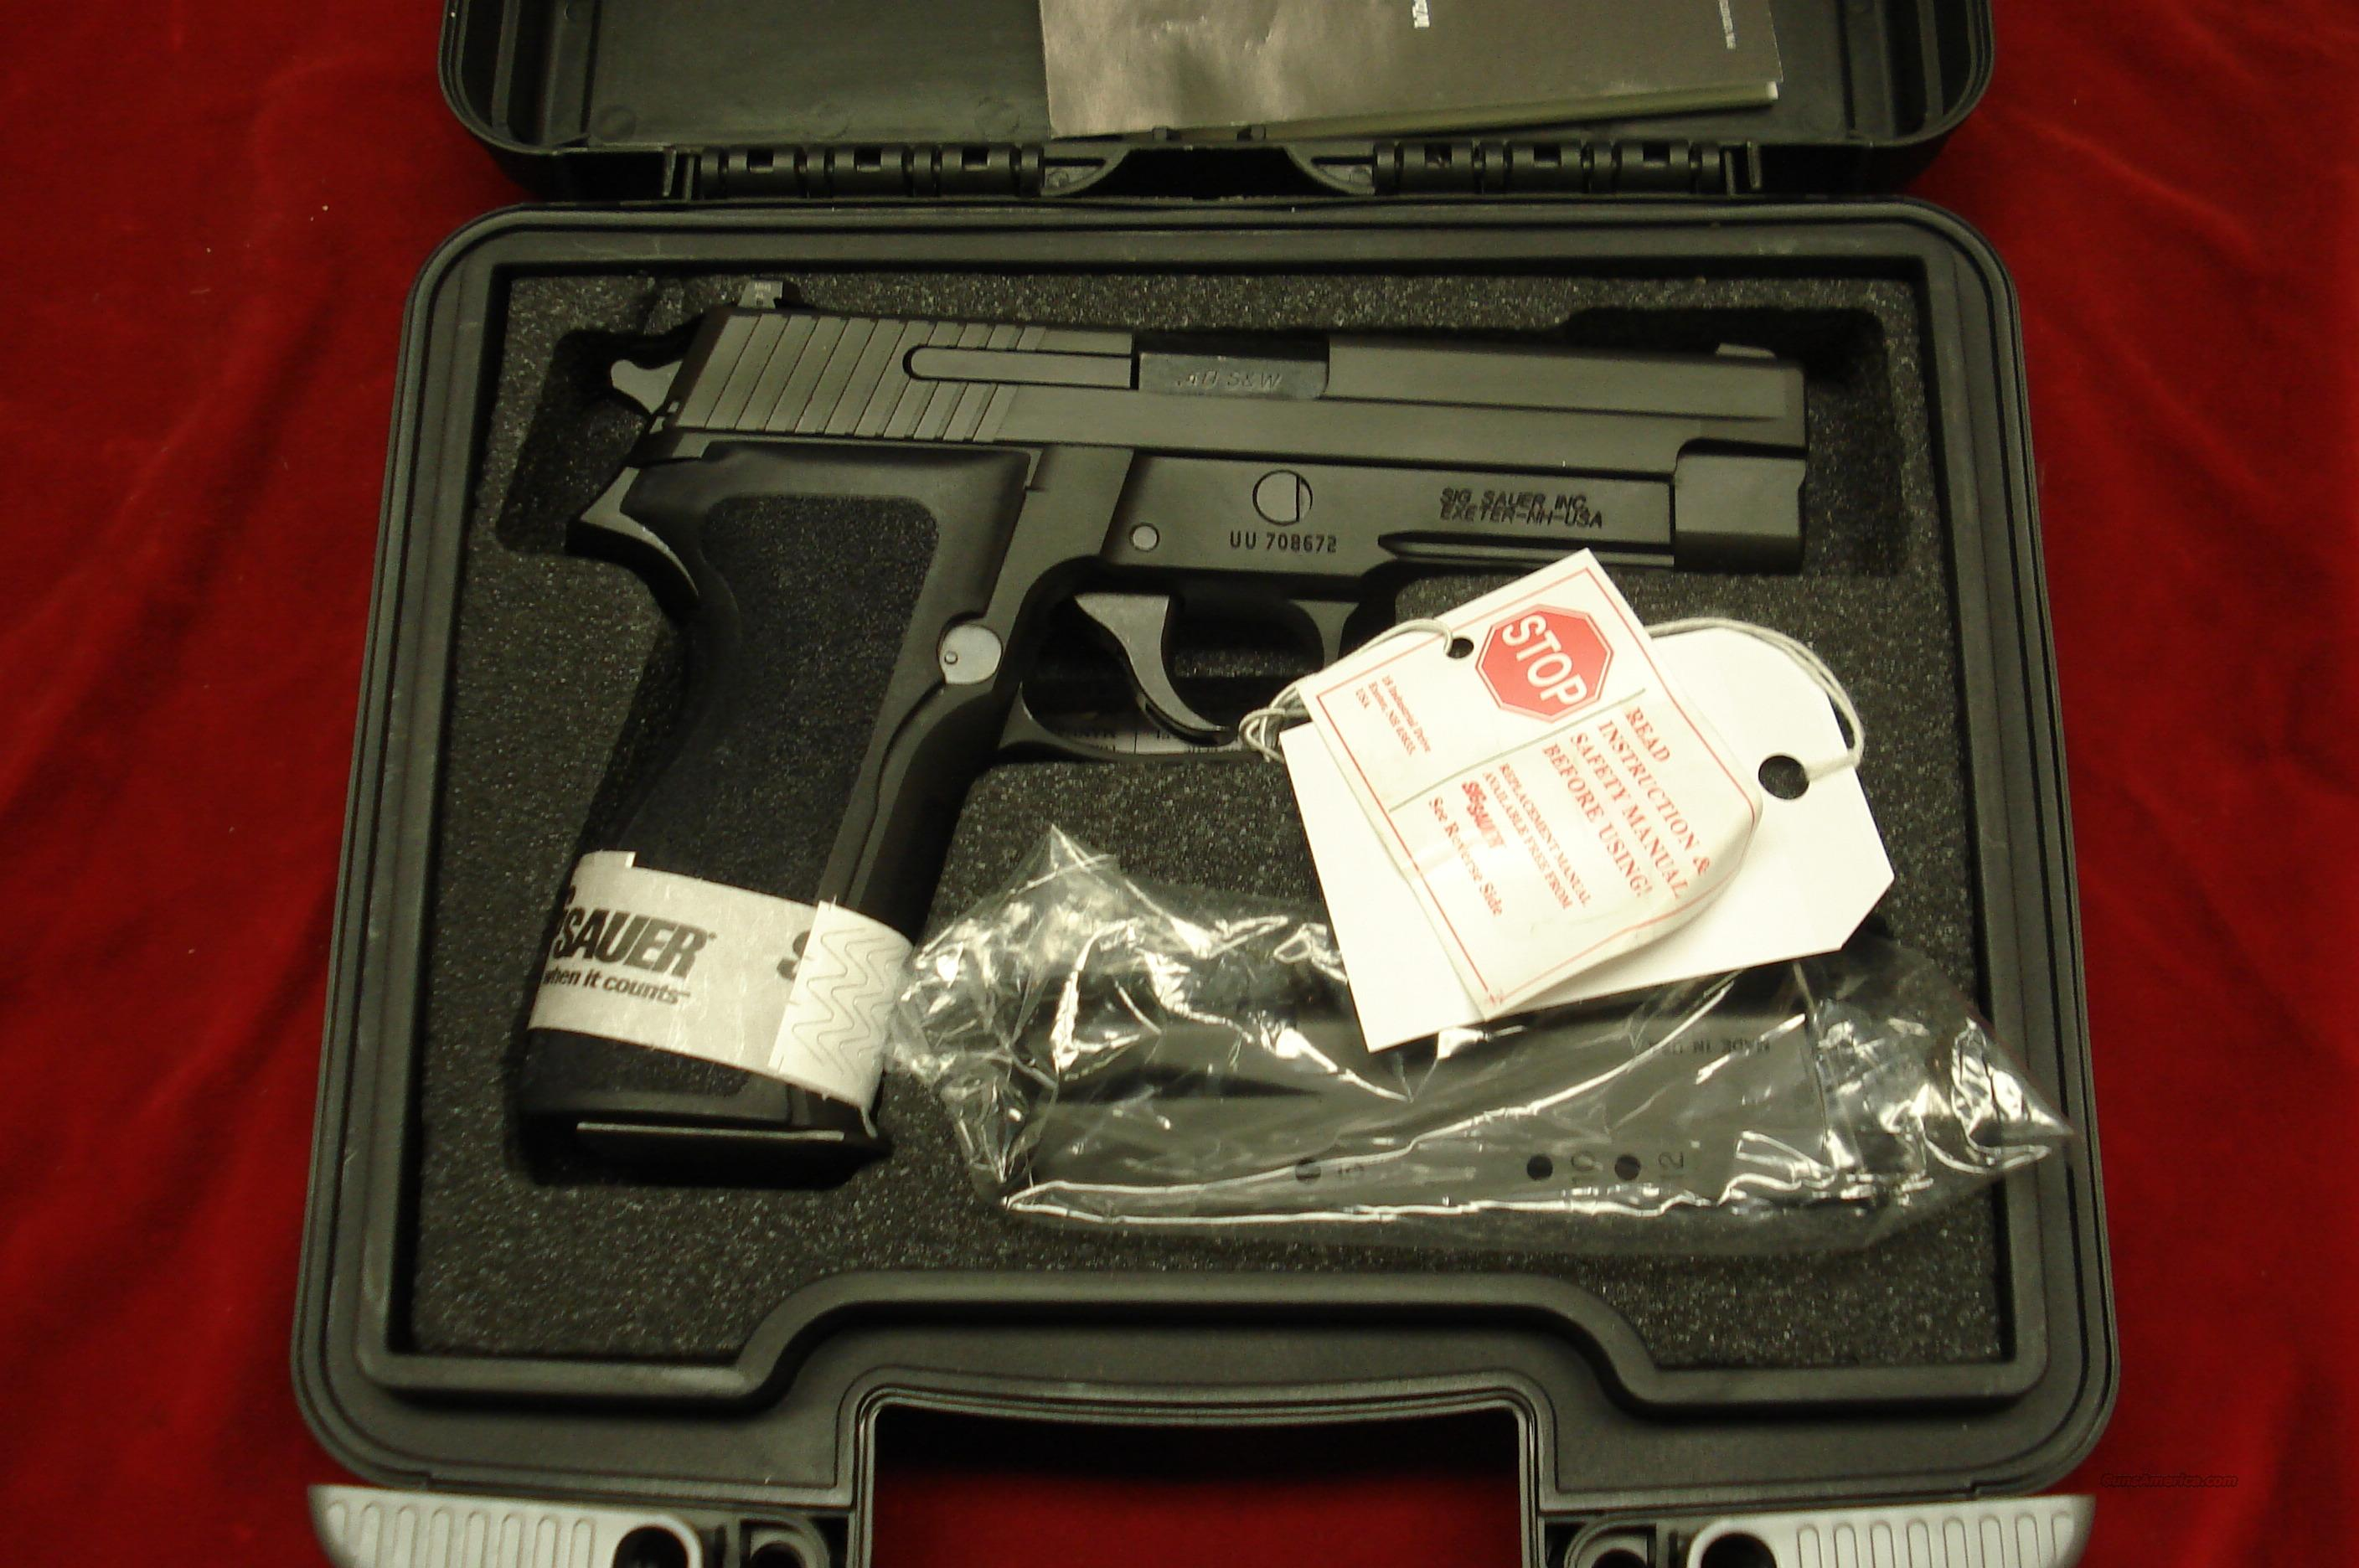 SIG SAUER P226 40 CAL. WITH NIGHT SIGHTS NEW  Guns > Pistols > Sig - Sauer/Sigarms Pistols > P226